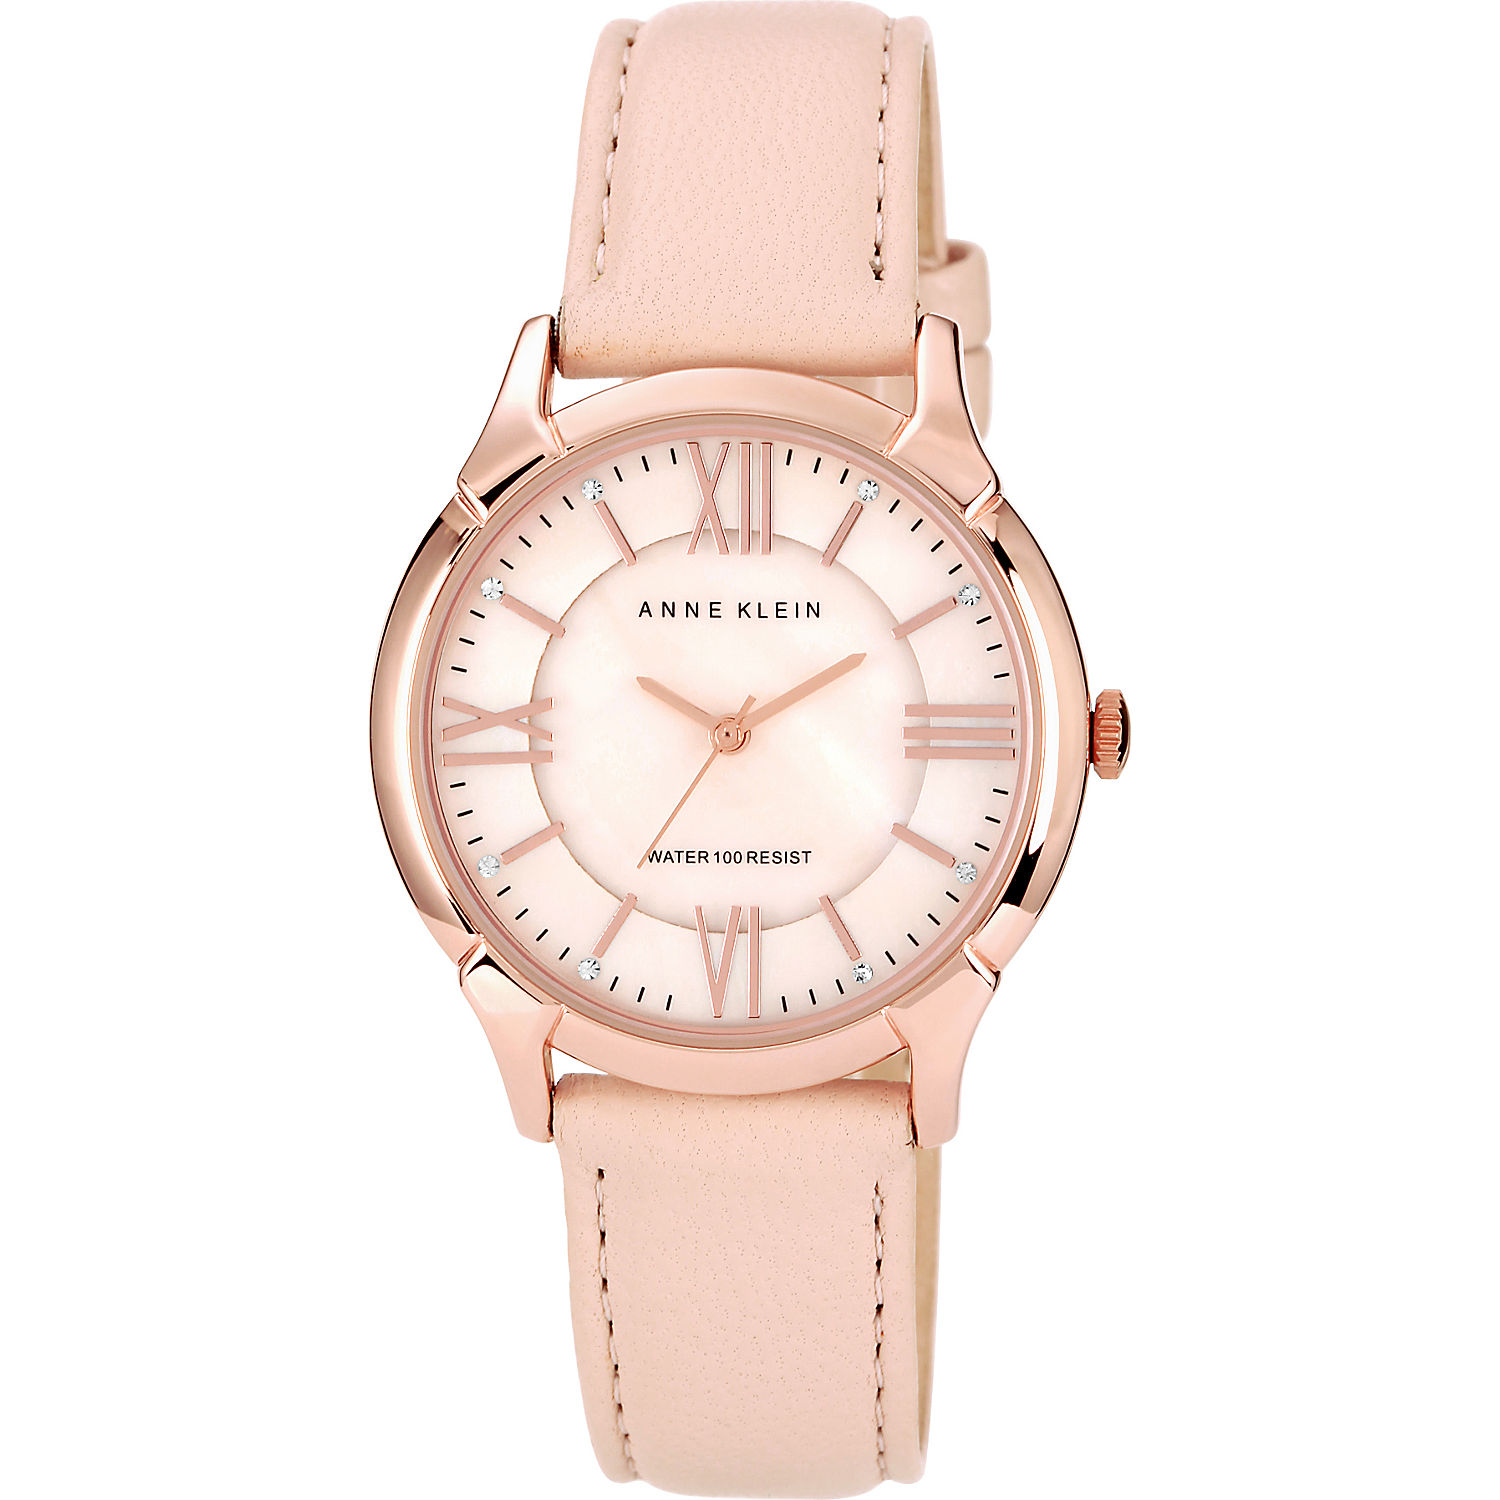 Anne klein rose gold tone watch for Anne klein rose gold watch set